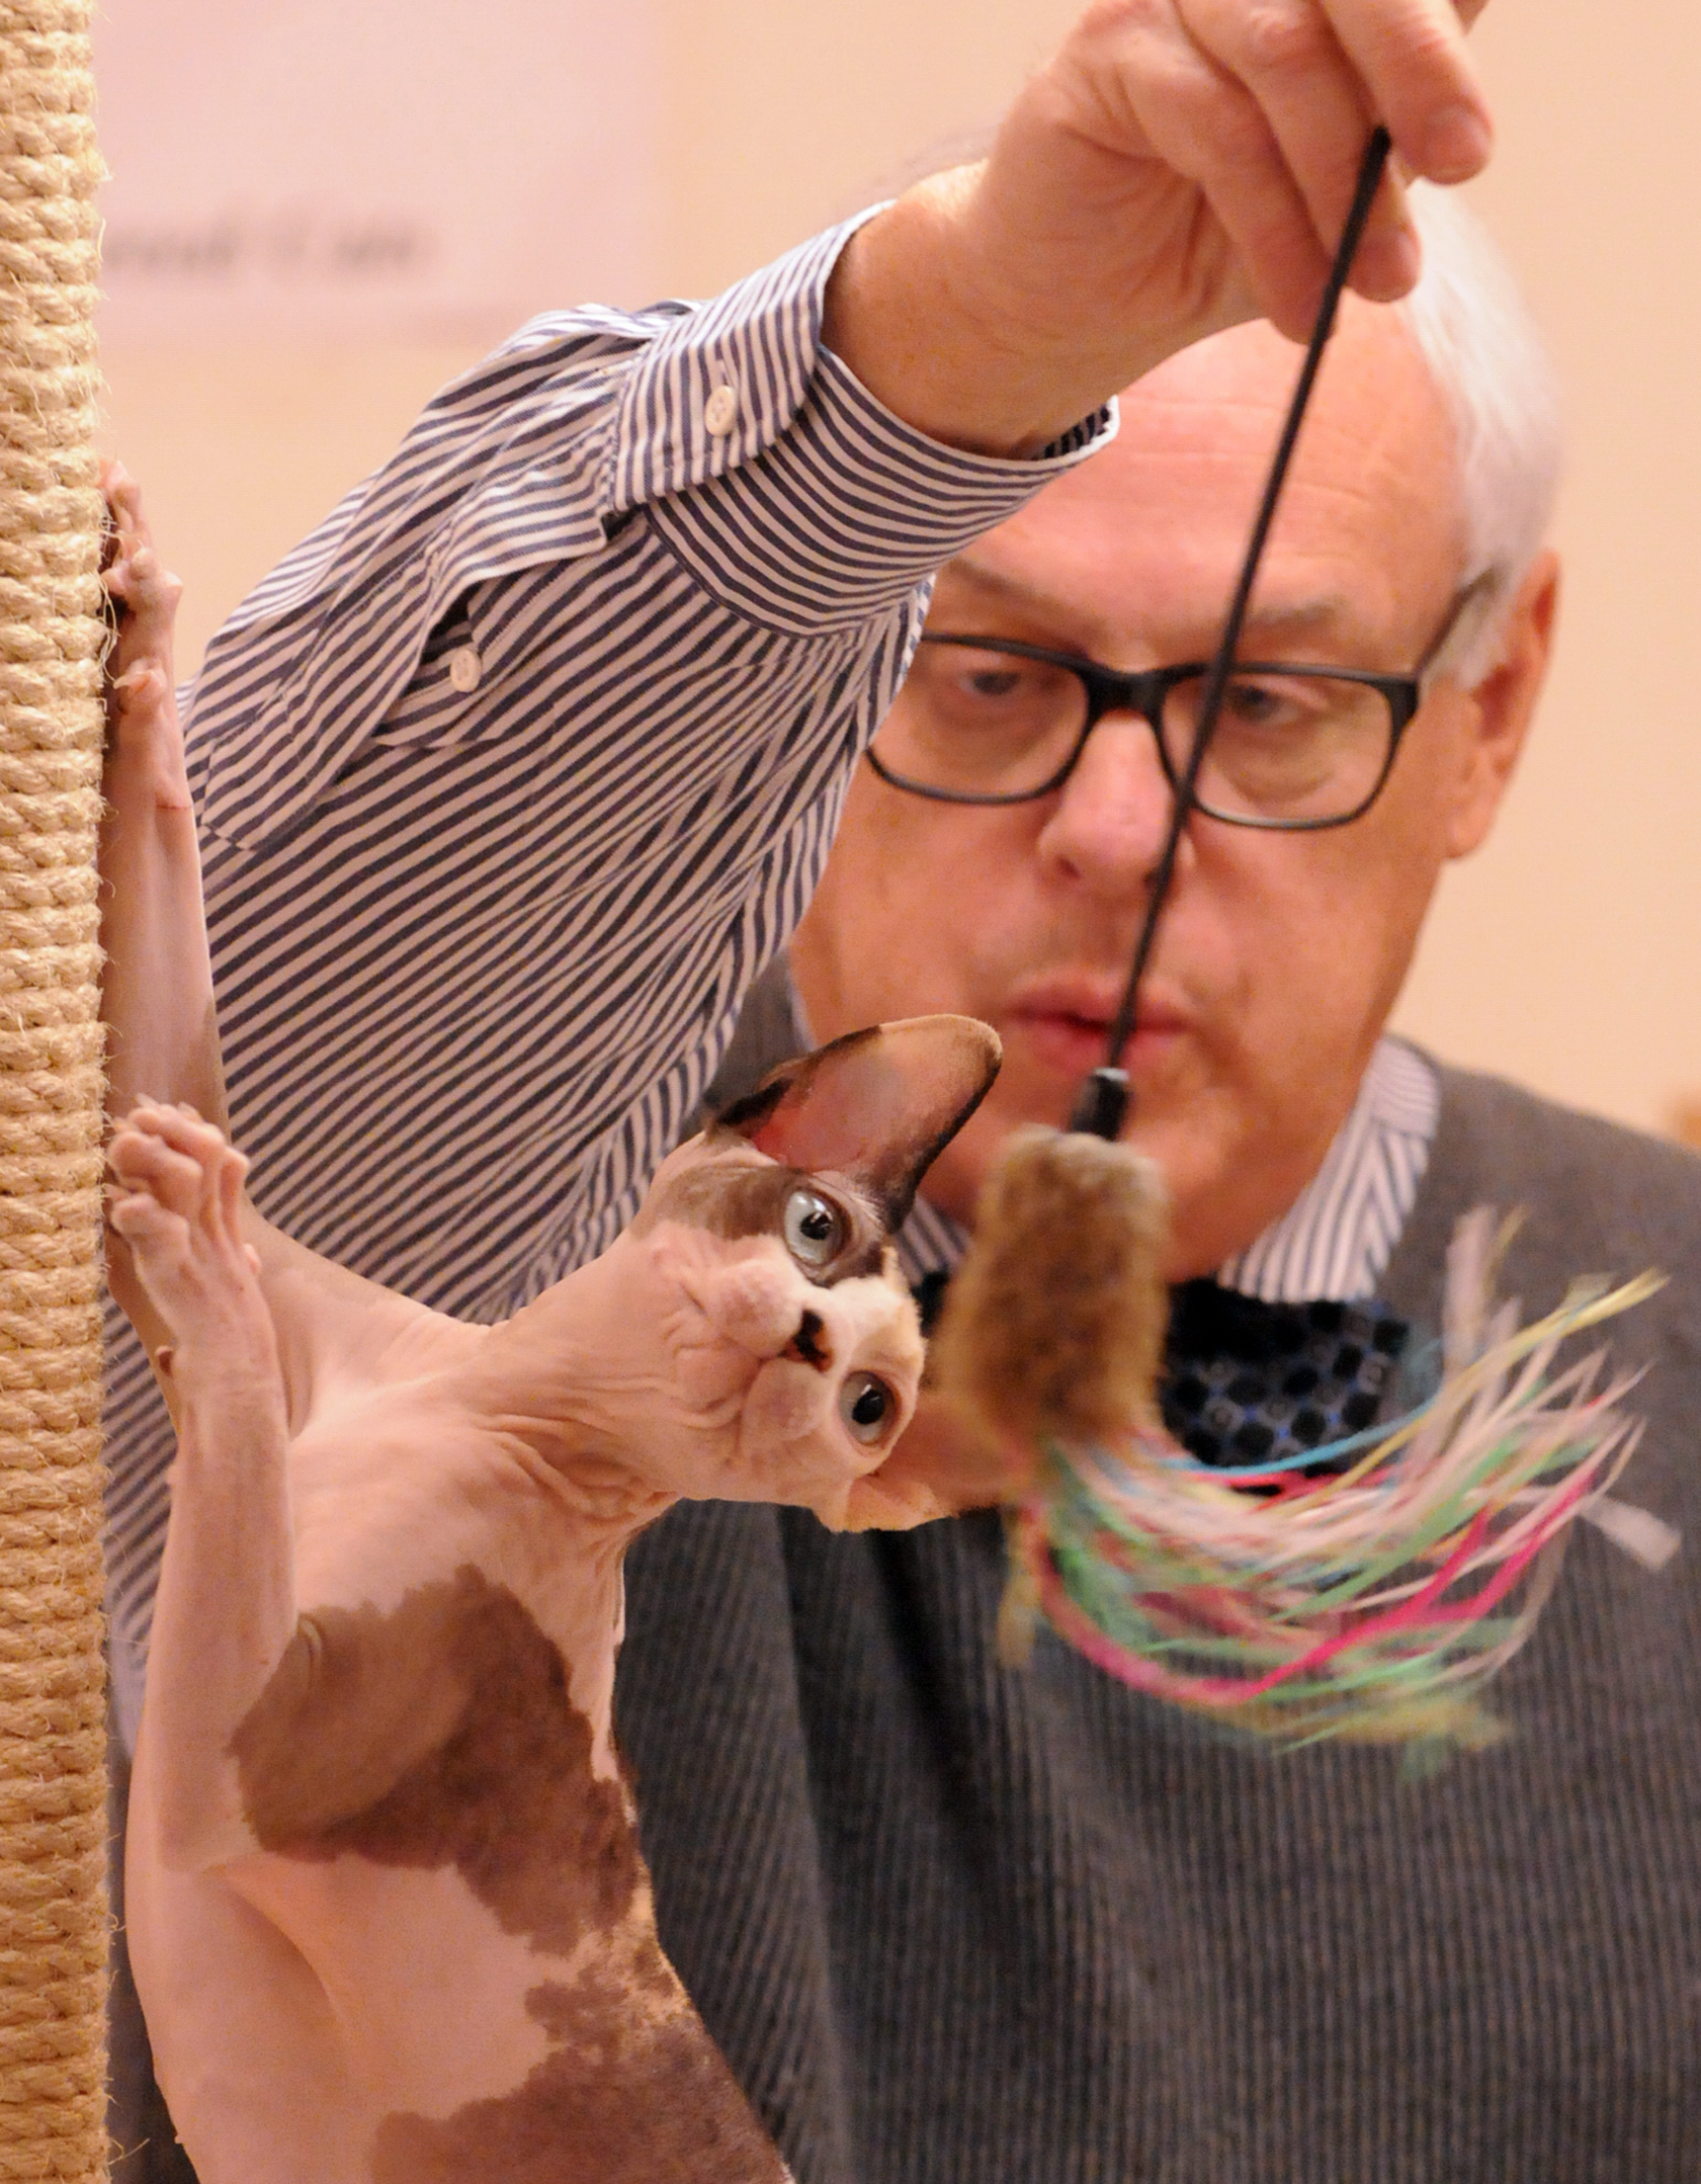 catshow3 Judge Doug Myers evaluates a 16-month-old Sphynx named Blair at the 2102 Steel City Kitties cat show. This year's edition takes place next weekend at the Pittsburgh Masonic Center in Ross.